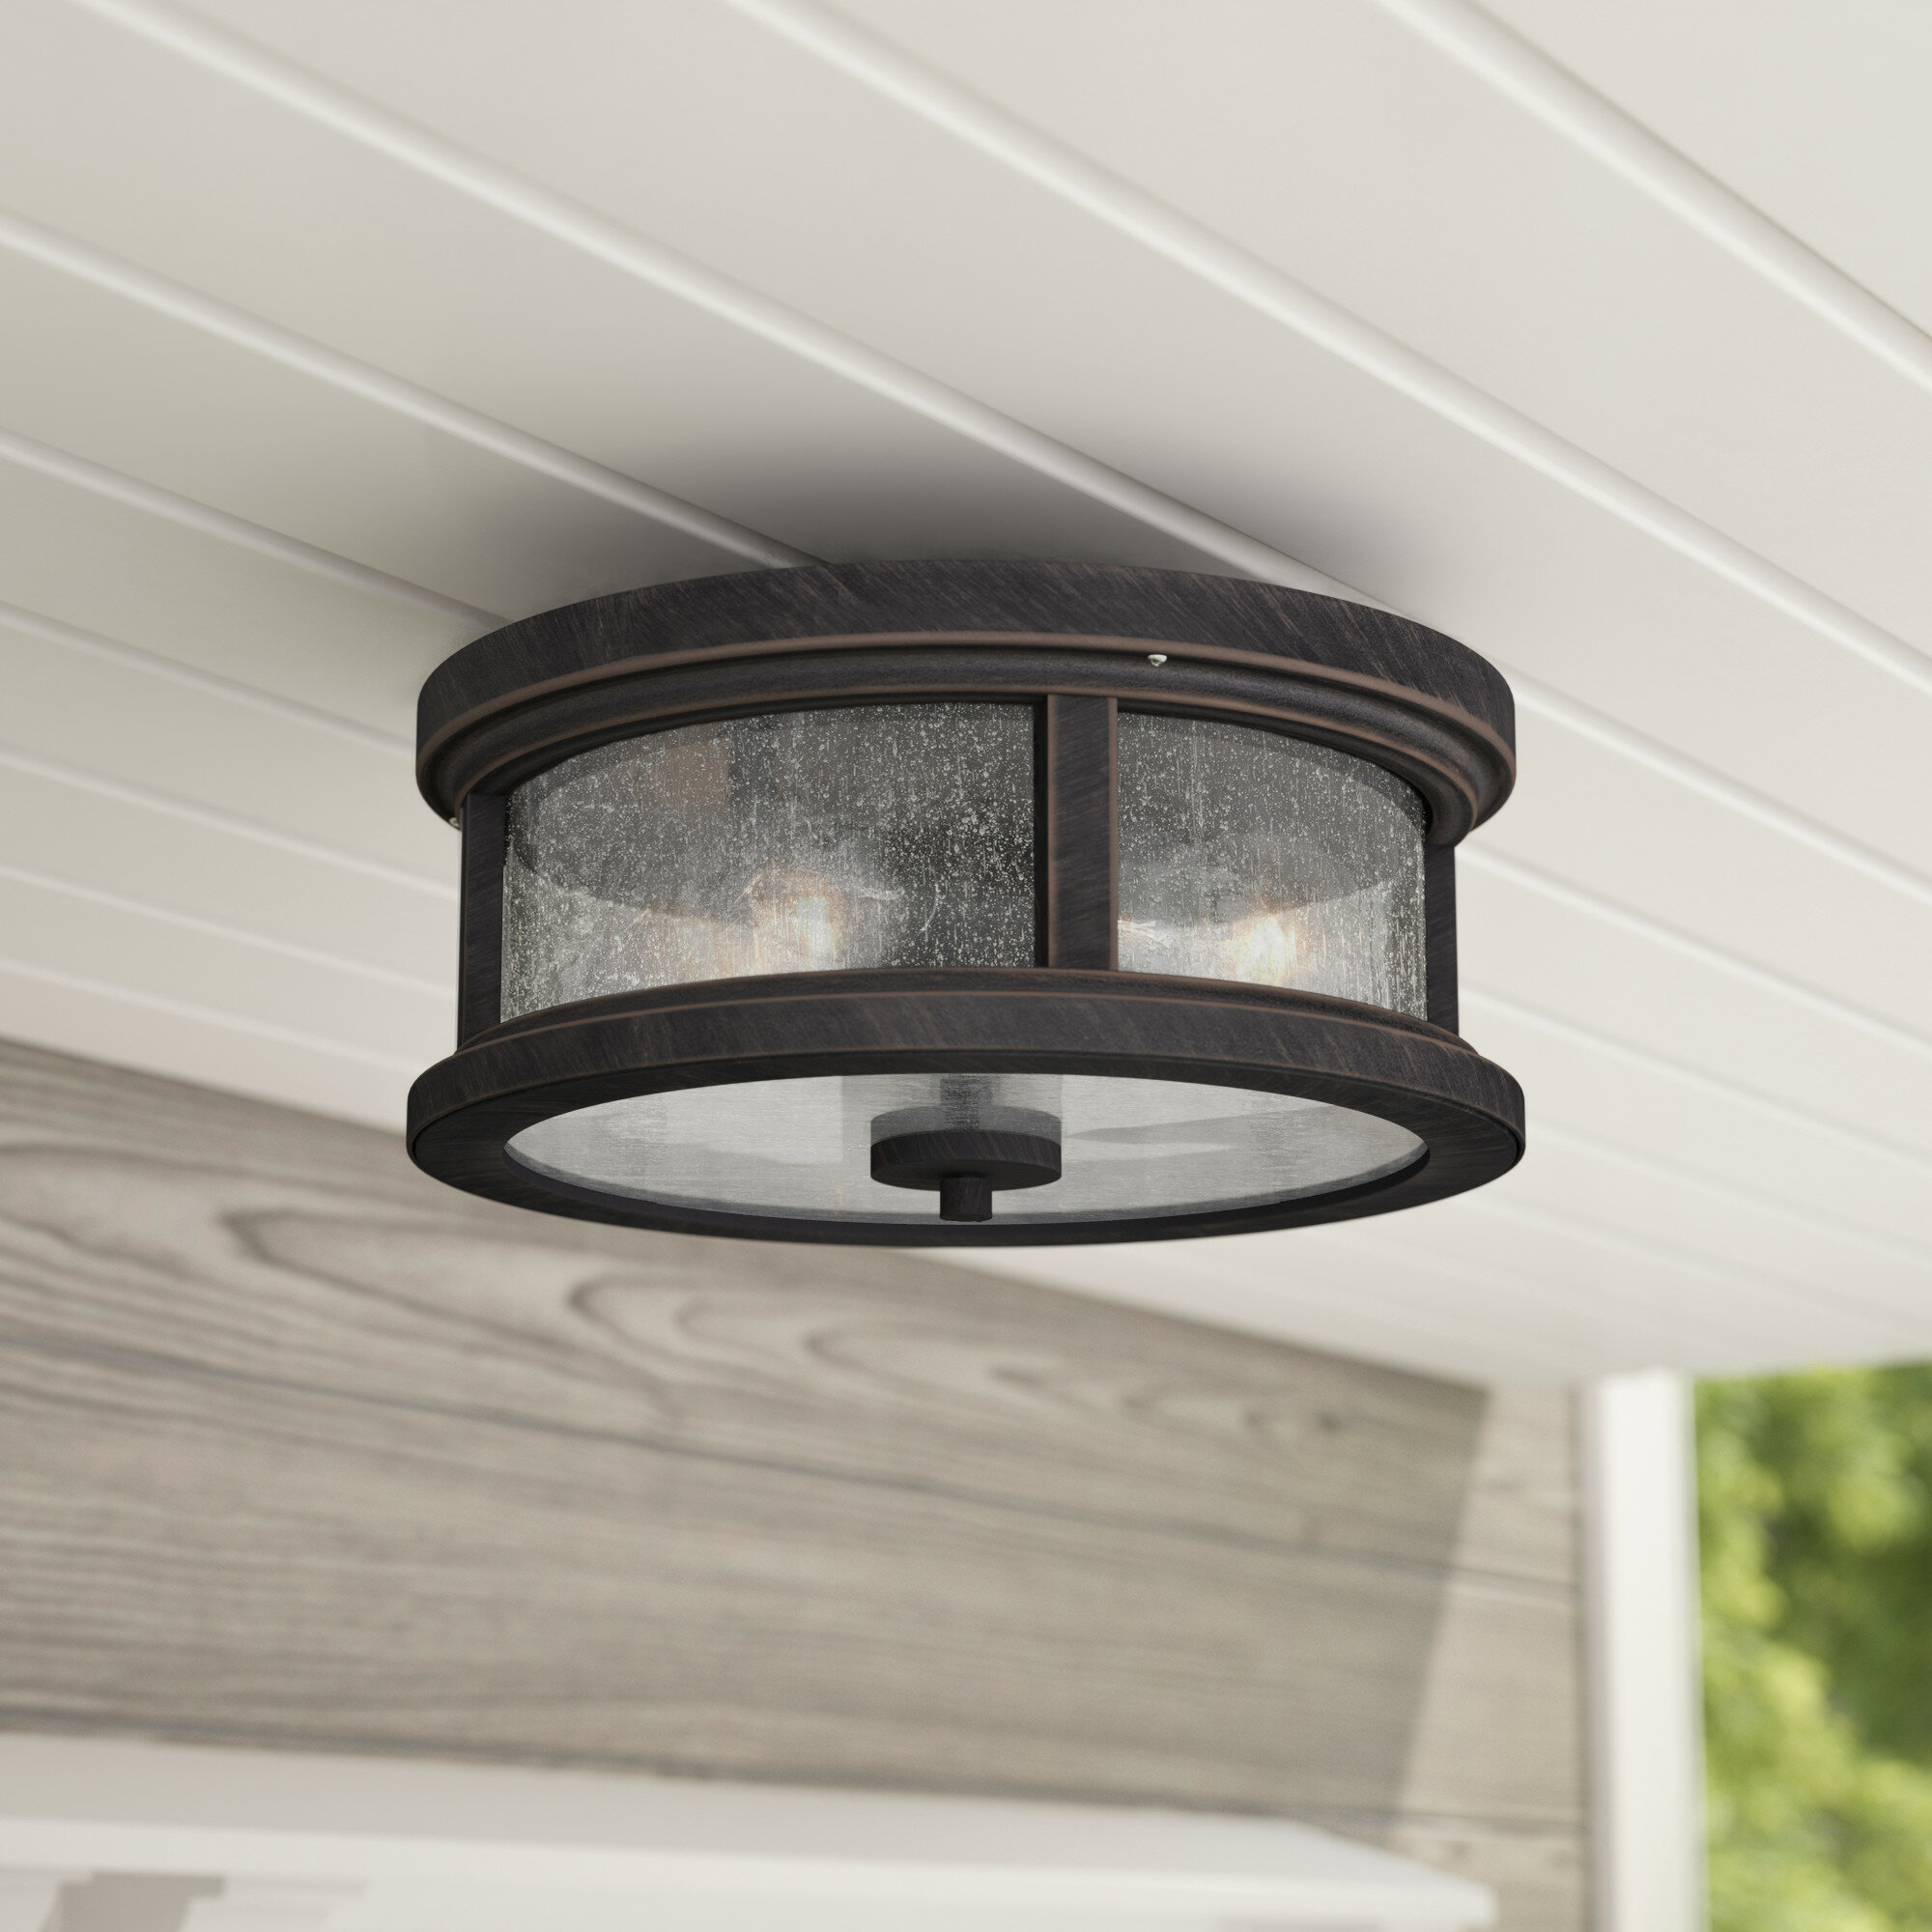 Marvelous Colwyn 2 Light Outdoor Flush Mount Download Free Architecture Designs Intelgarnamadebymaigaardcom